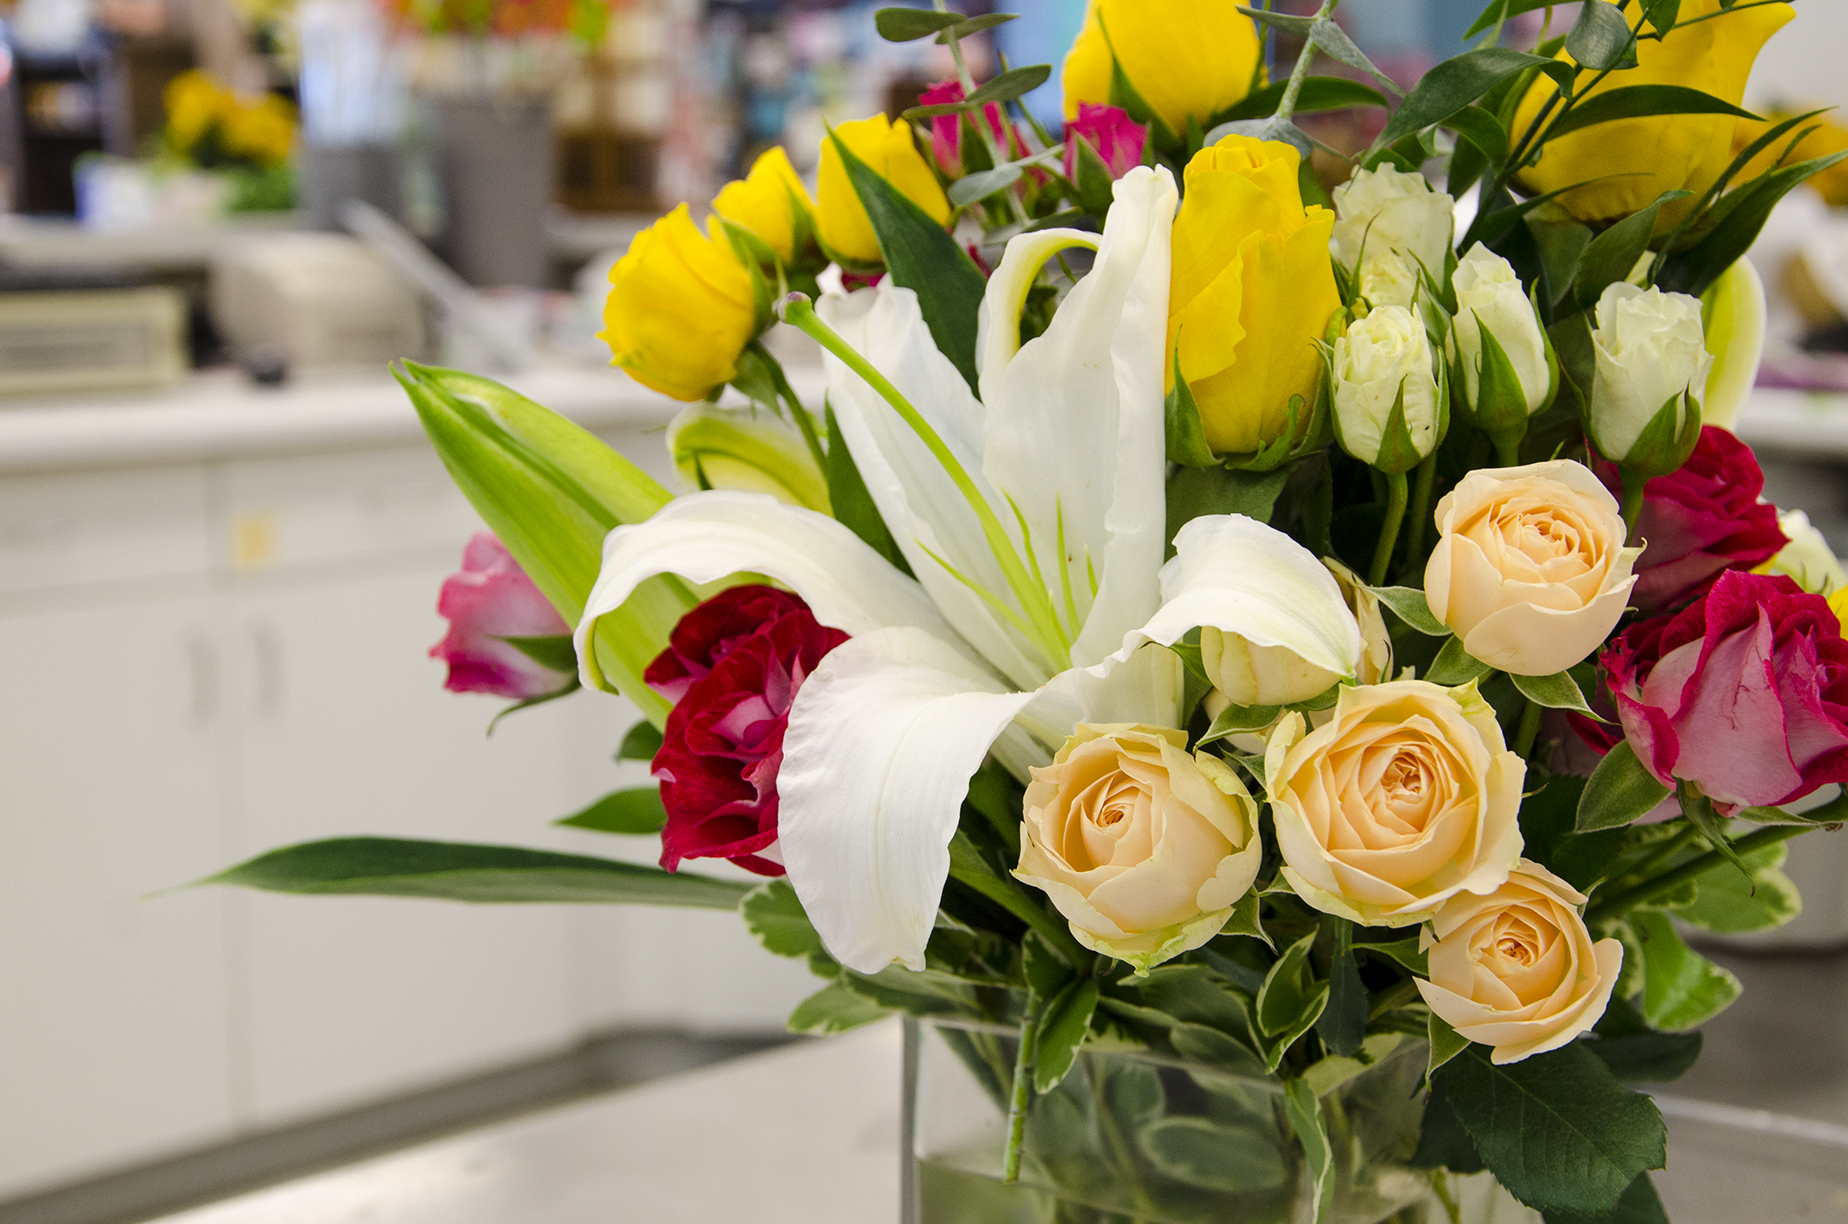 Floral arrangement care 101 stranges florists greenhouses and receiving fresh cut flowers is always a special occasion but just like any other perishable item flowers do have a shelf life fortunately there are steps izmirmasajfo